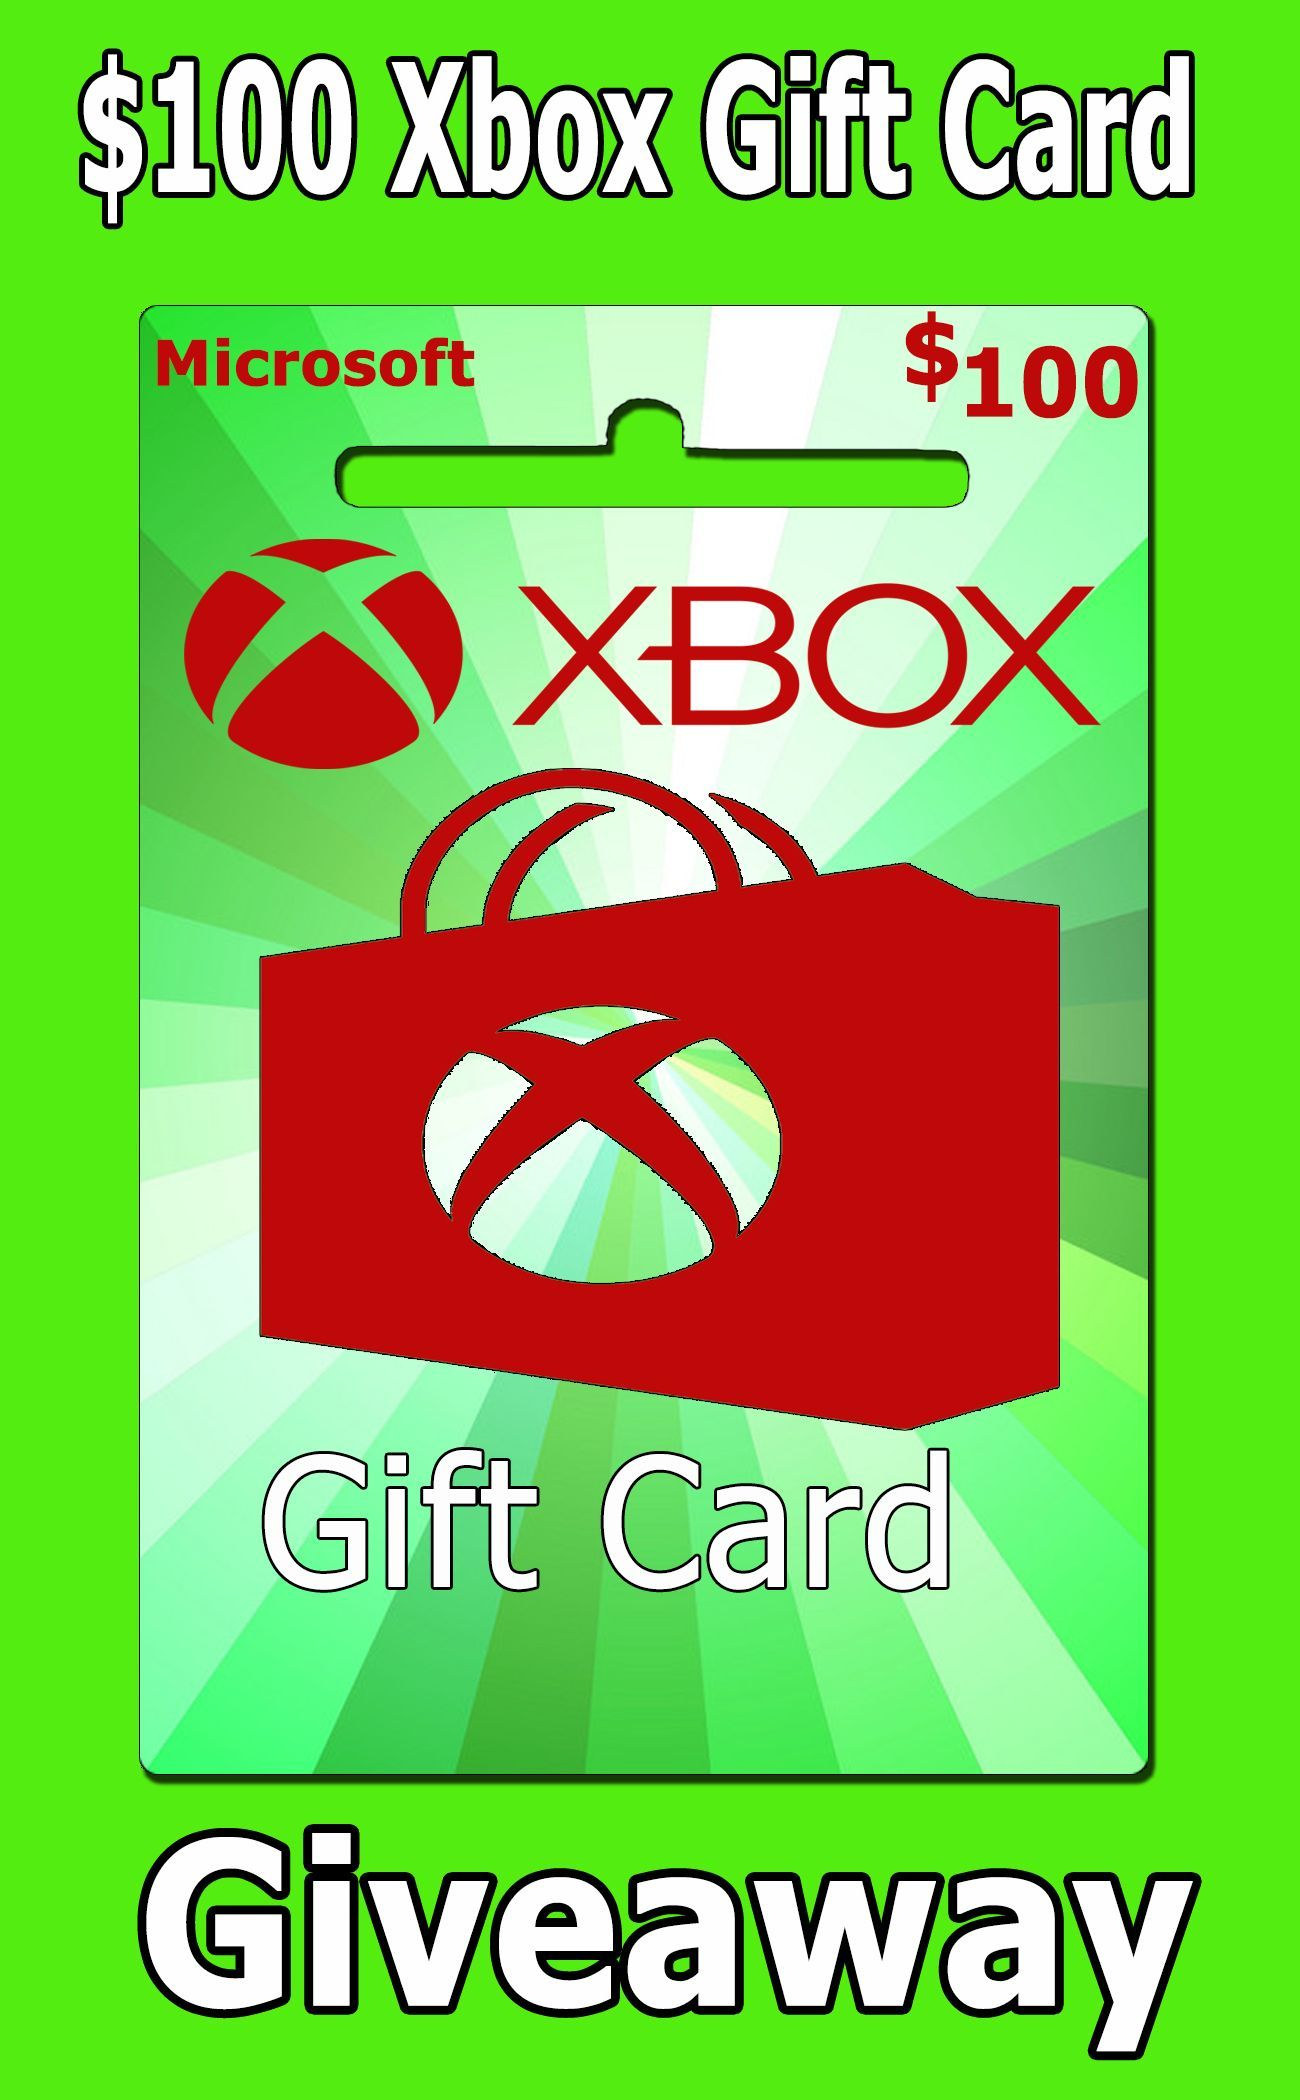 Get Free 100 Xbox Gift Card Code Get Unused Xbox Gift Codes 2020 Freexbox Freexboxgiftcards In 2020 Xbox Gift Card Xbox Gifts Gift Card